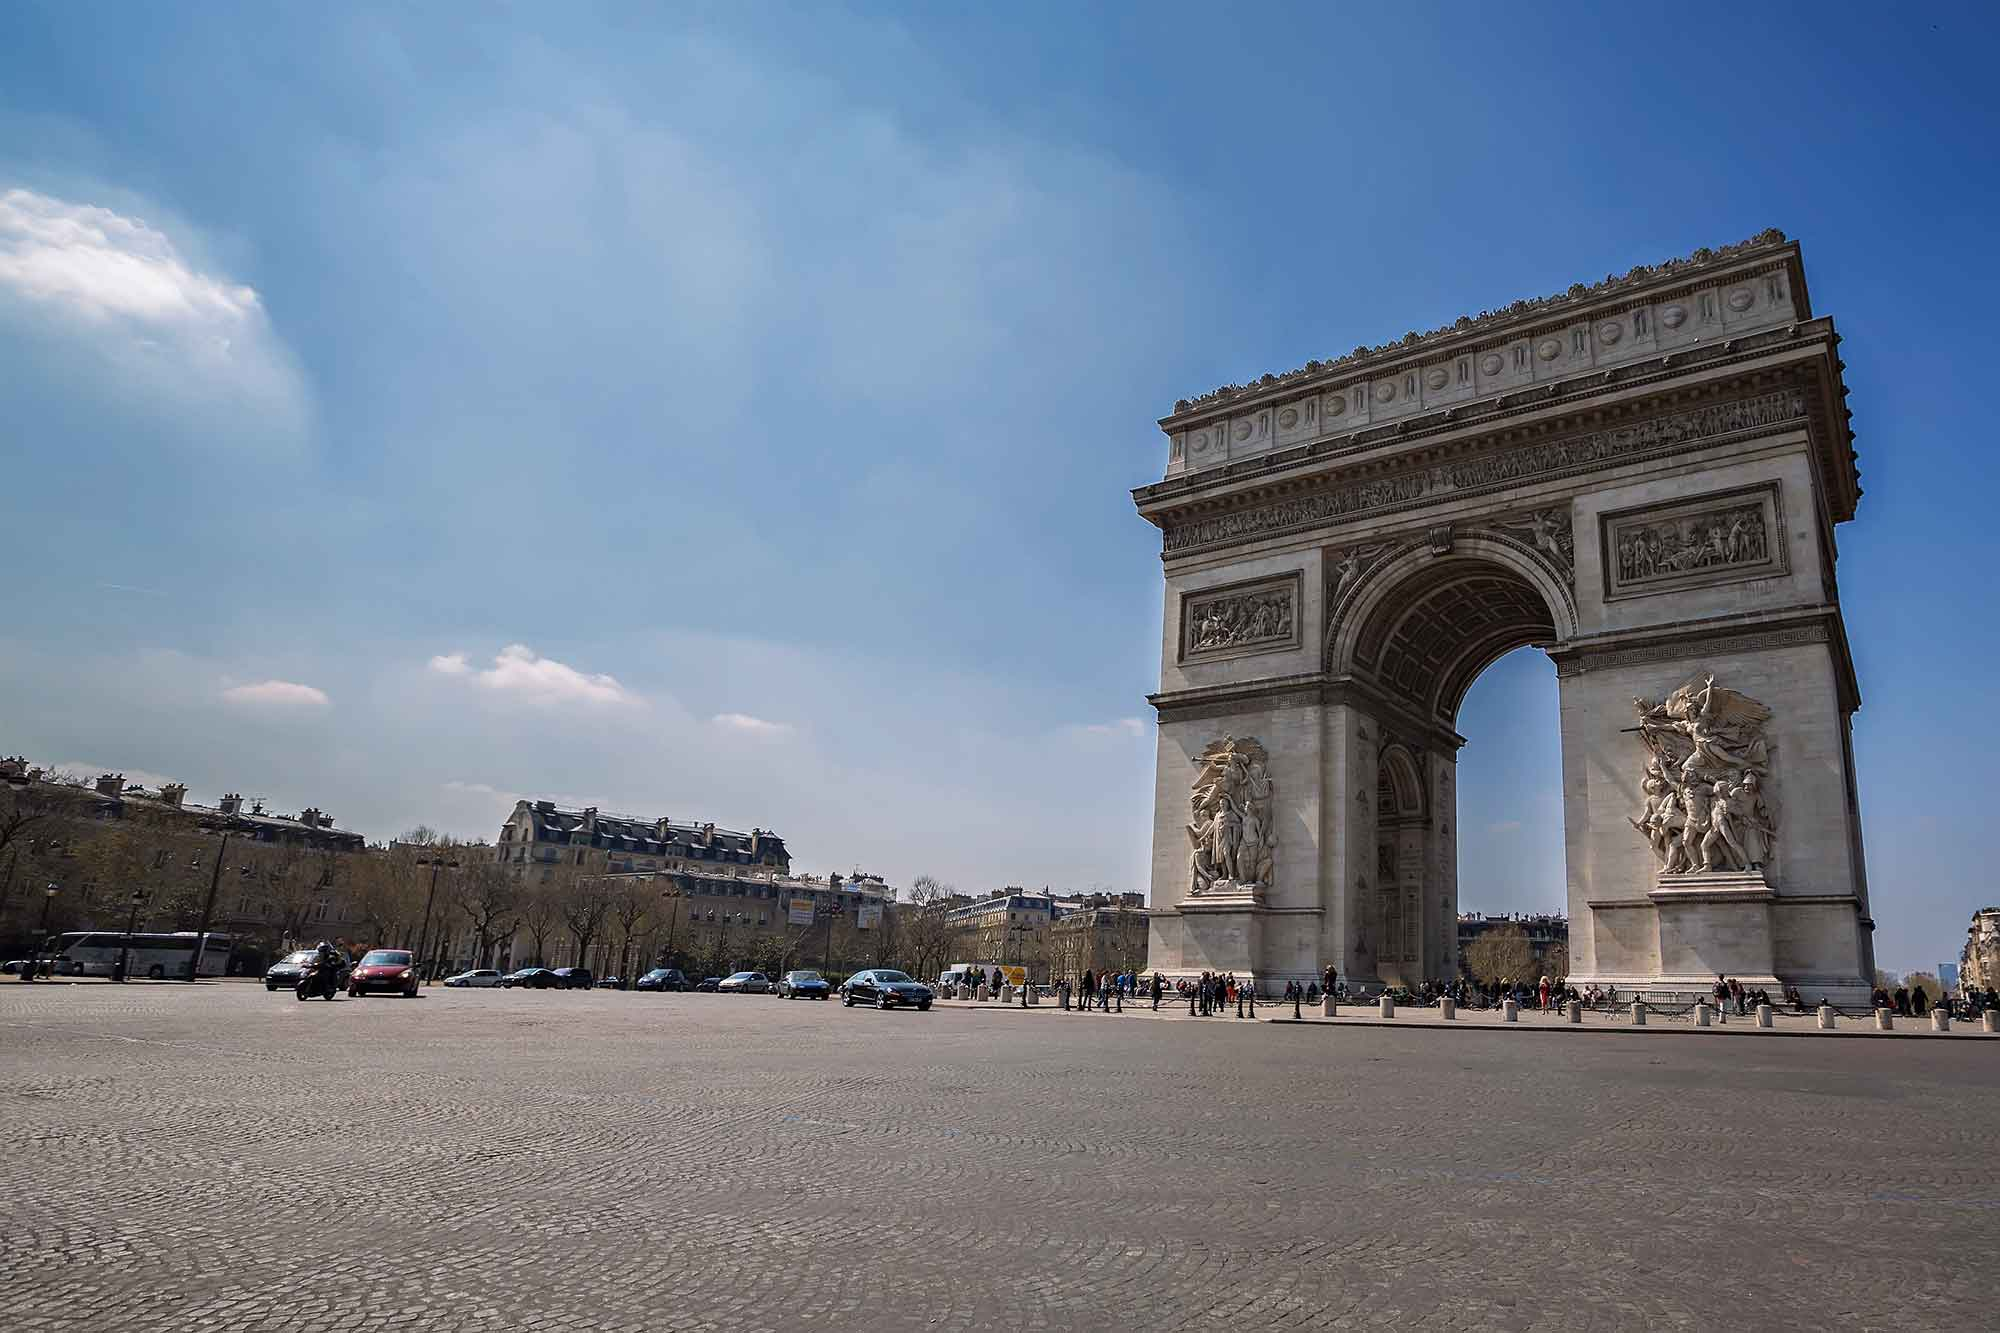 Arc de Triumphe in Paris, France. © Ulli Maier & Nisa Maier